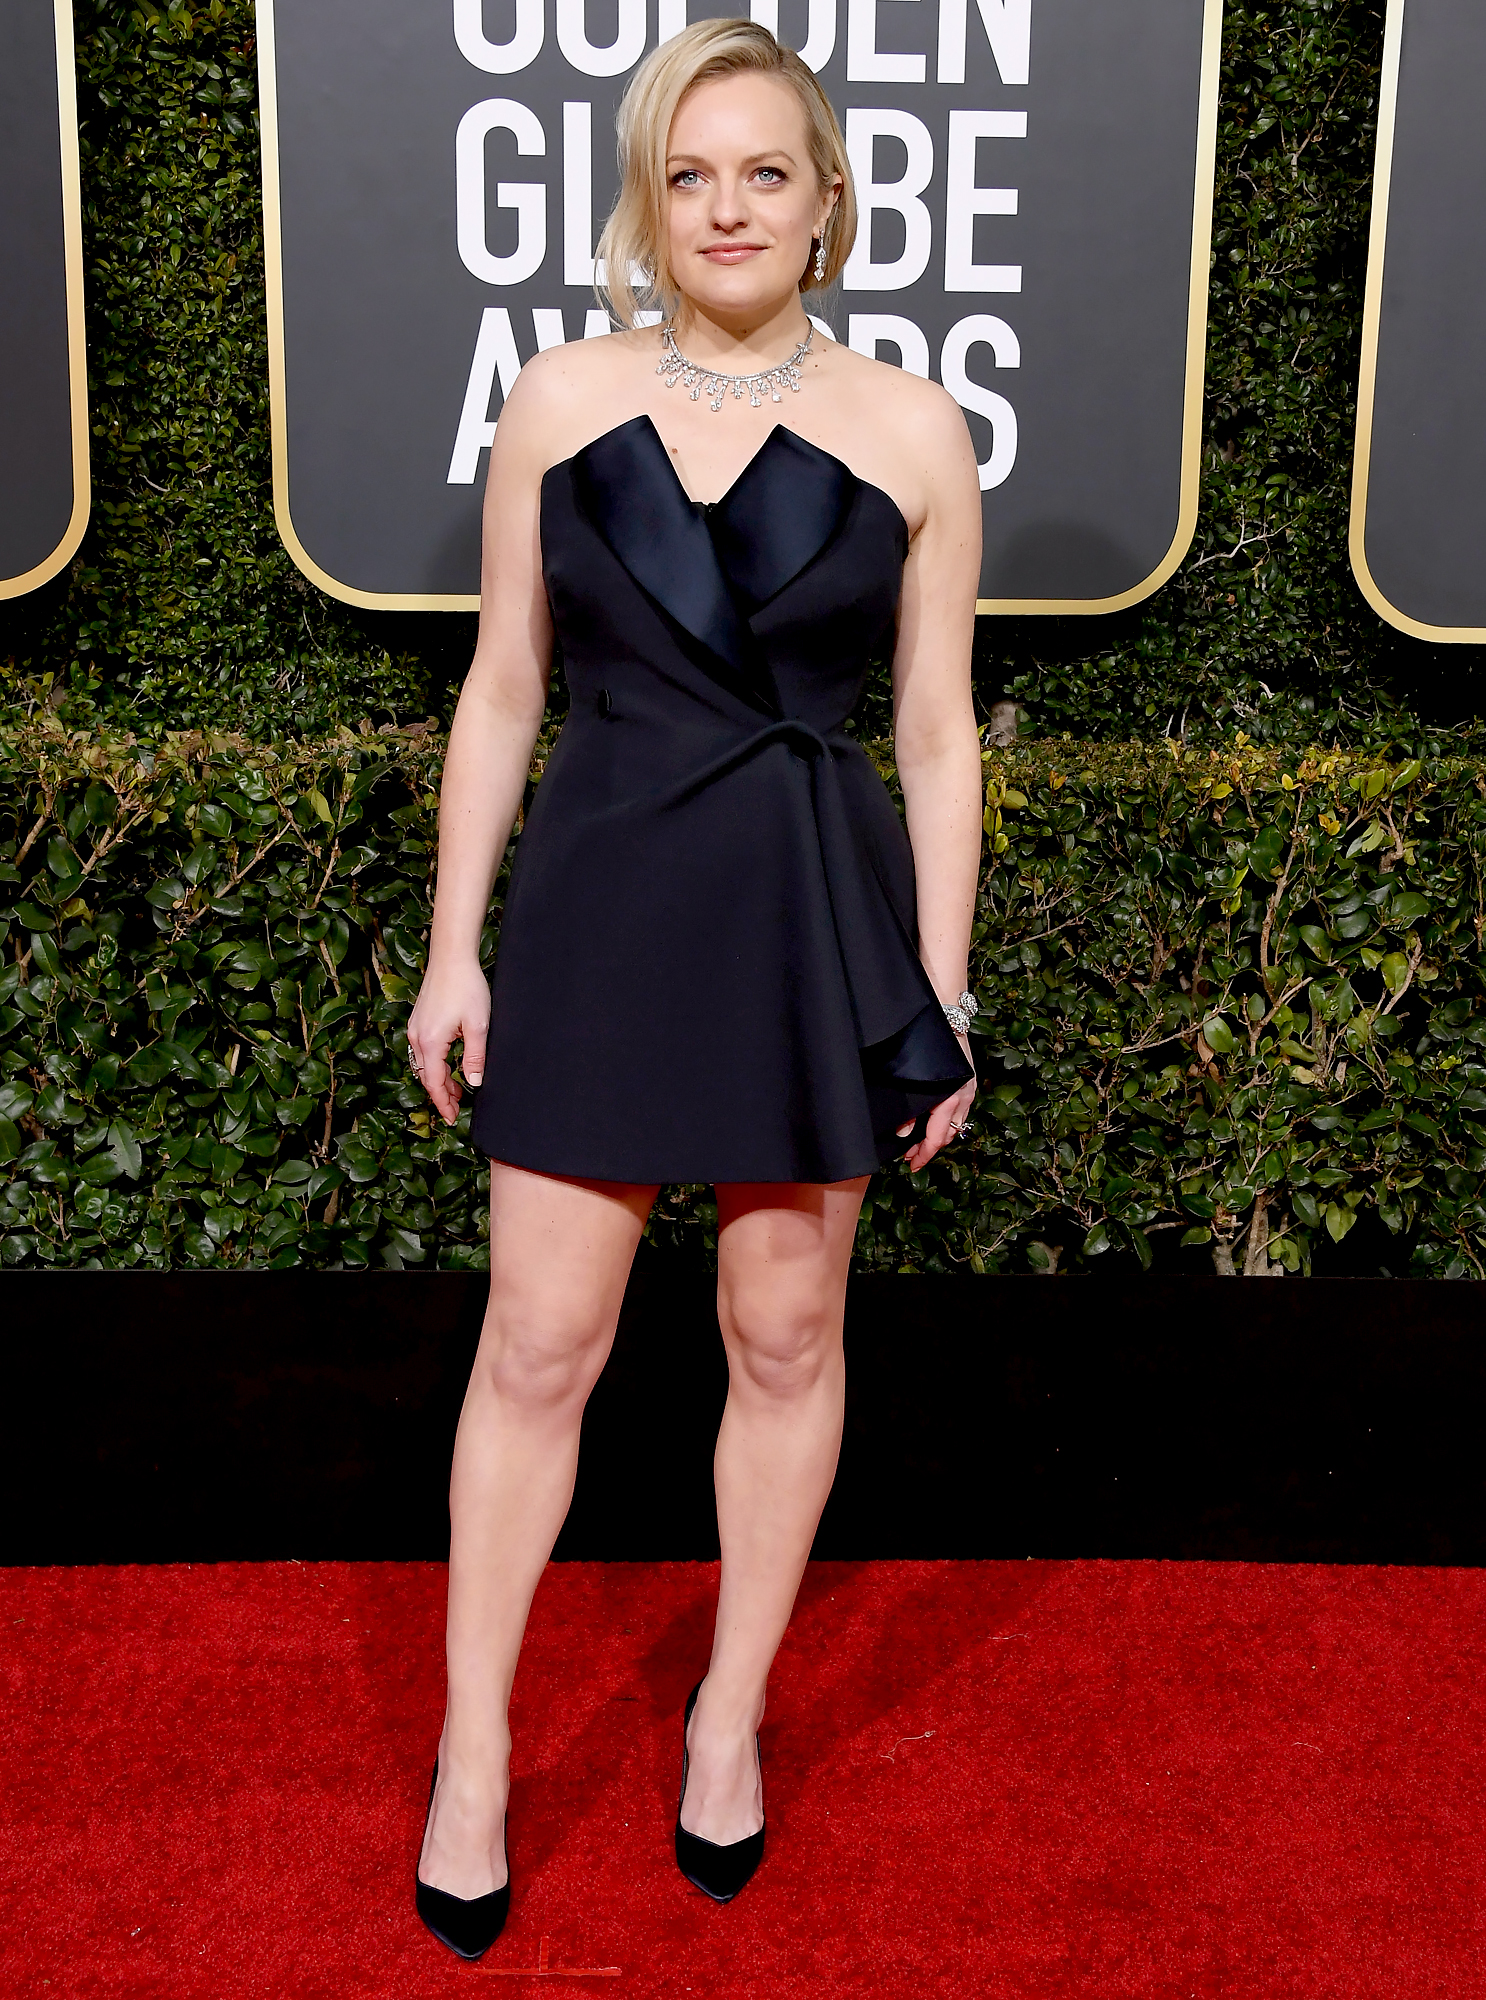 Golden Globes 2019 Red Carpet Fashion See Celeb Dresses, Gowns